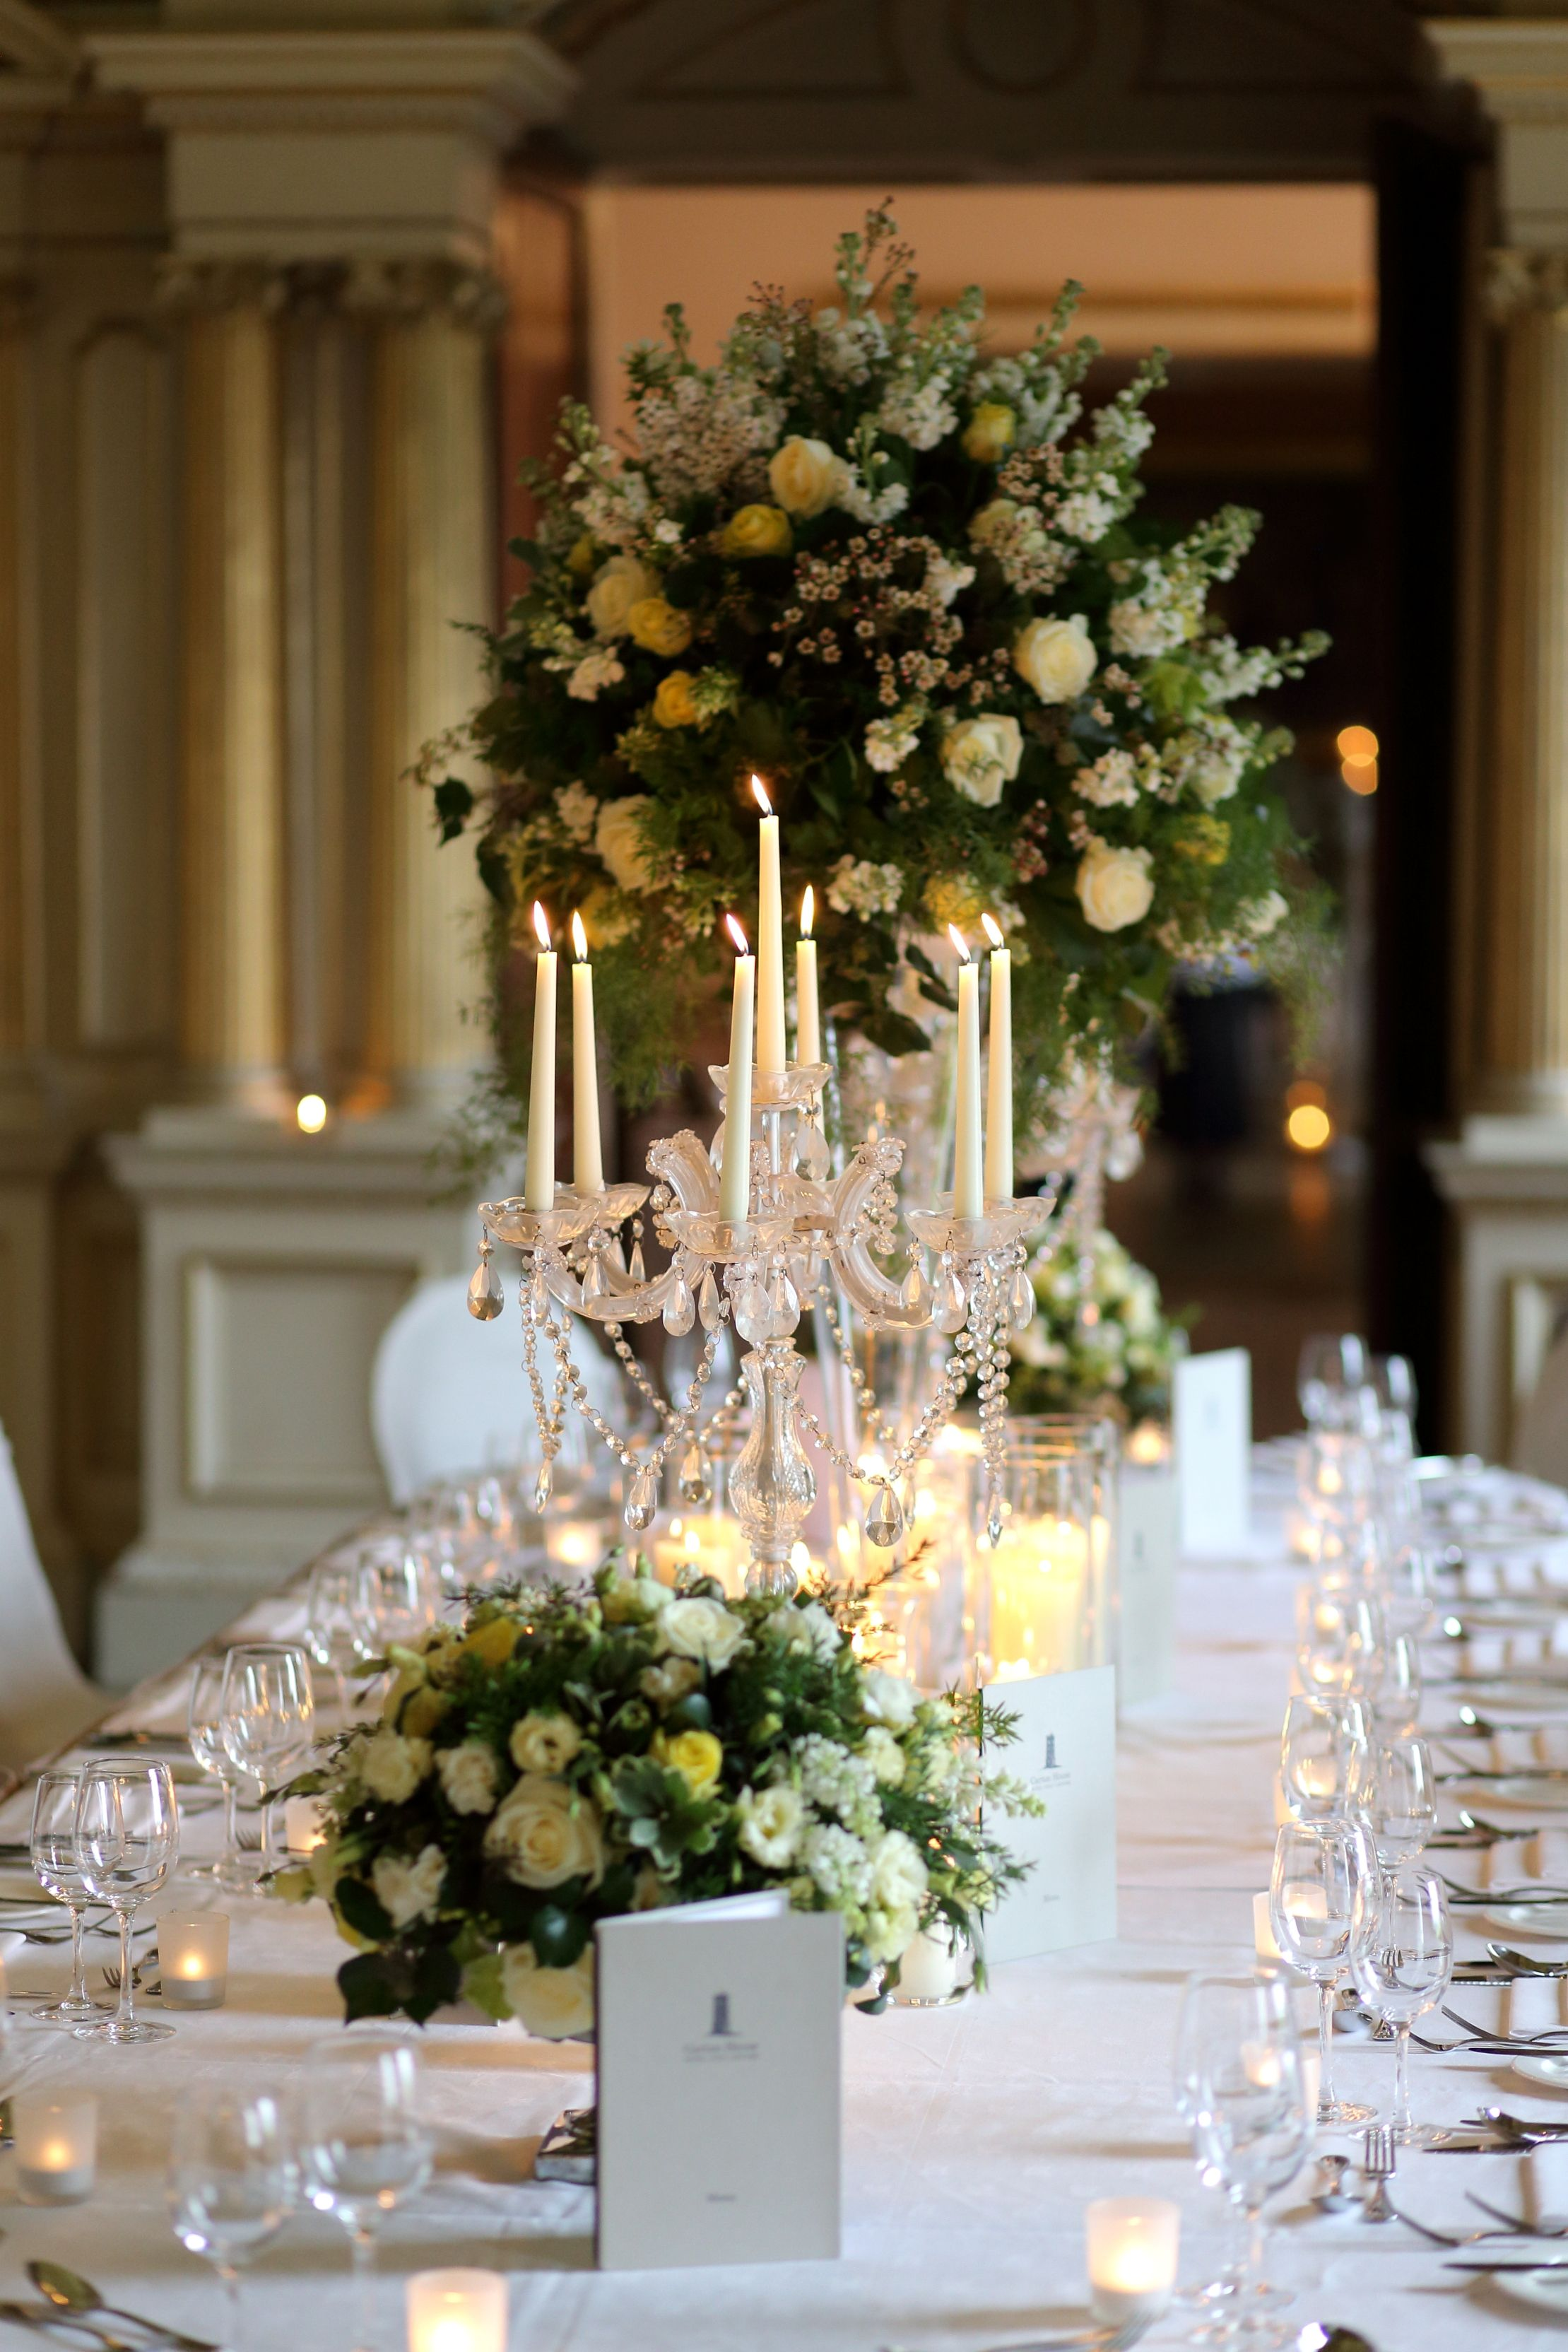 French Touch Flowers Looking Flawless At Carton House Dublin